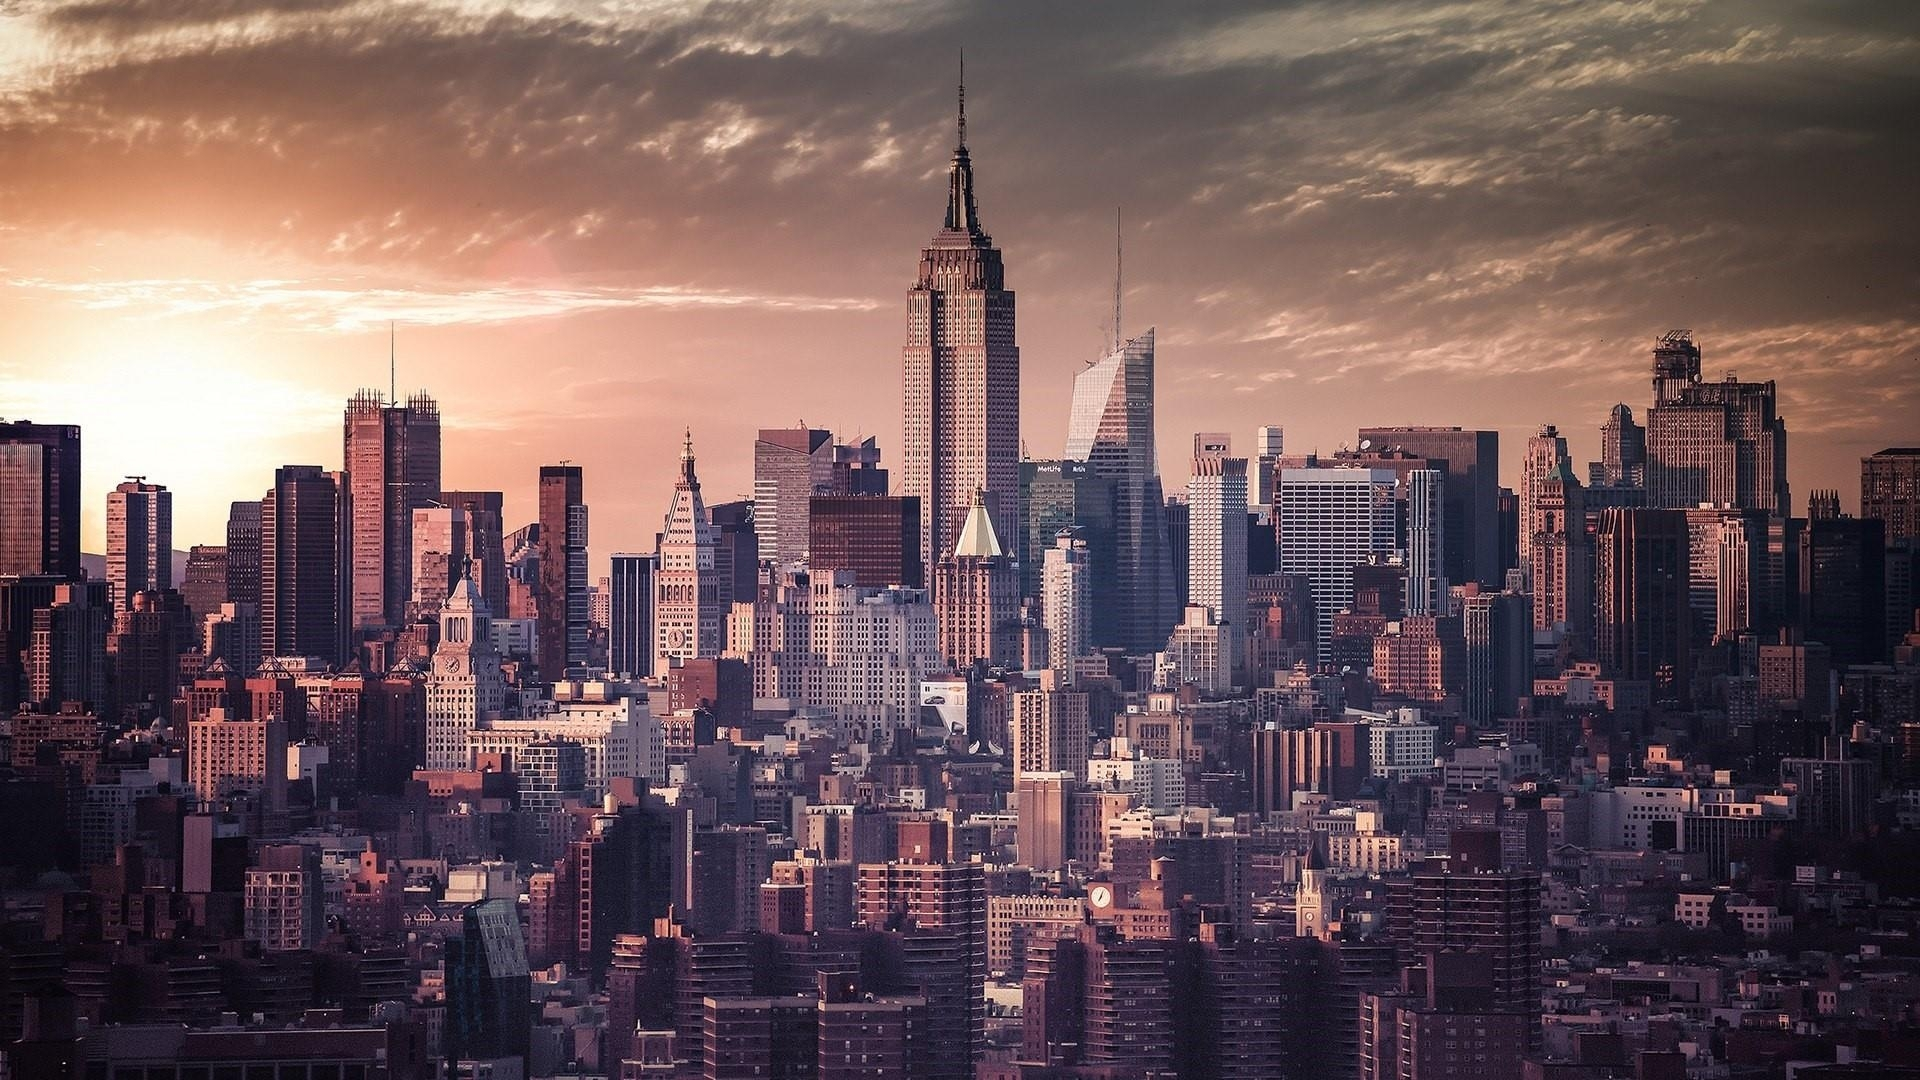 10 Best Wallpapers New York City FULL HD 1080p For PC Background